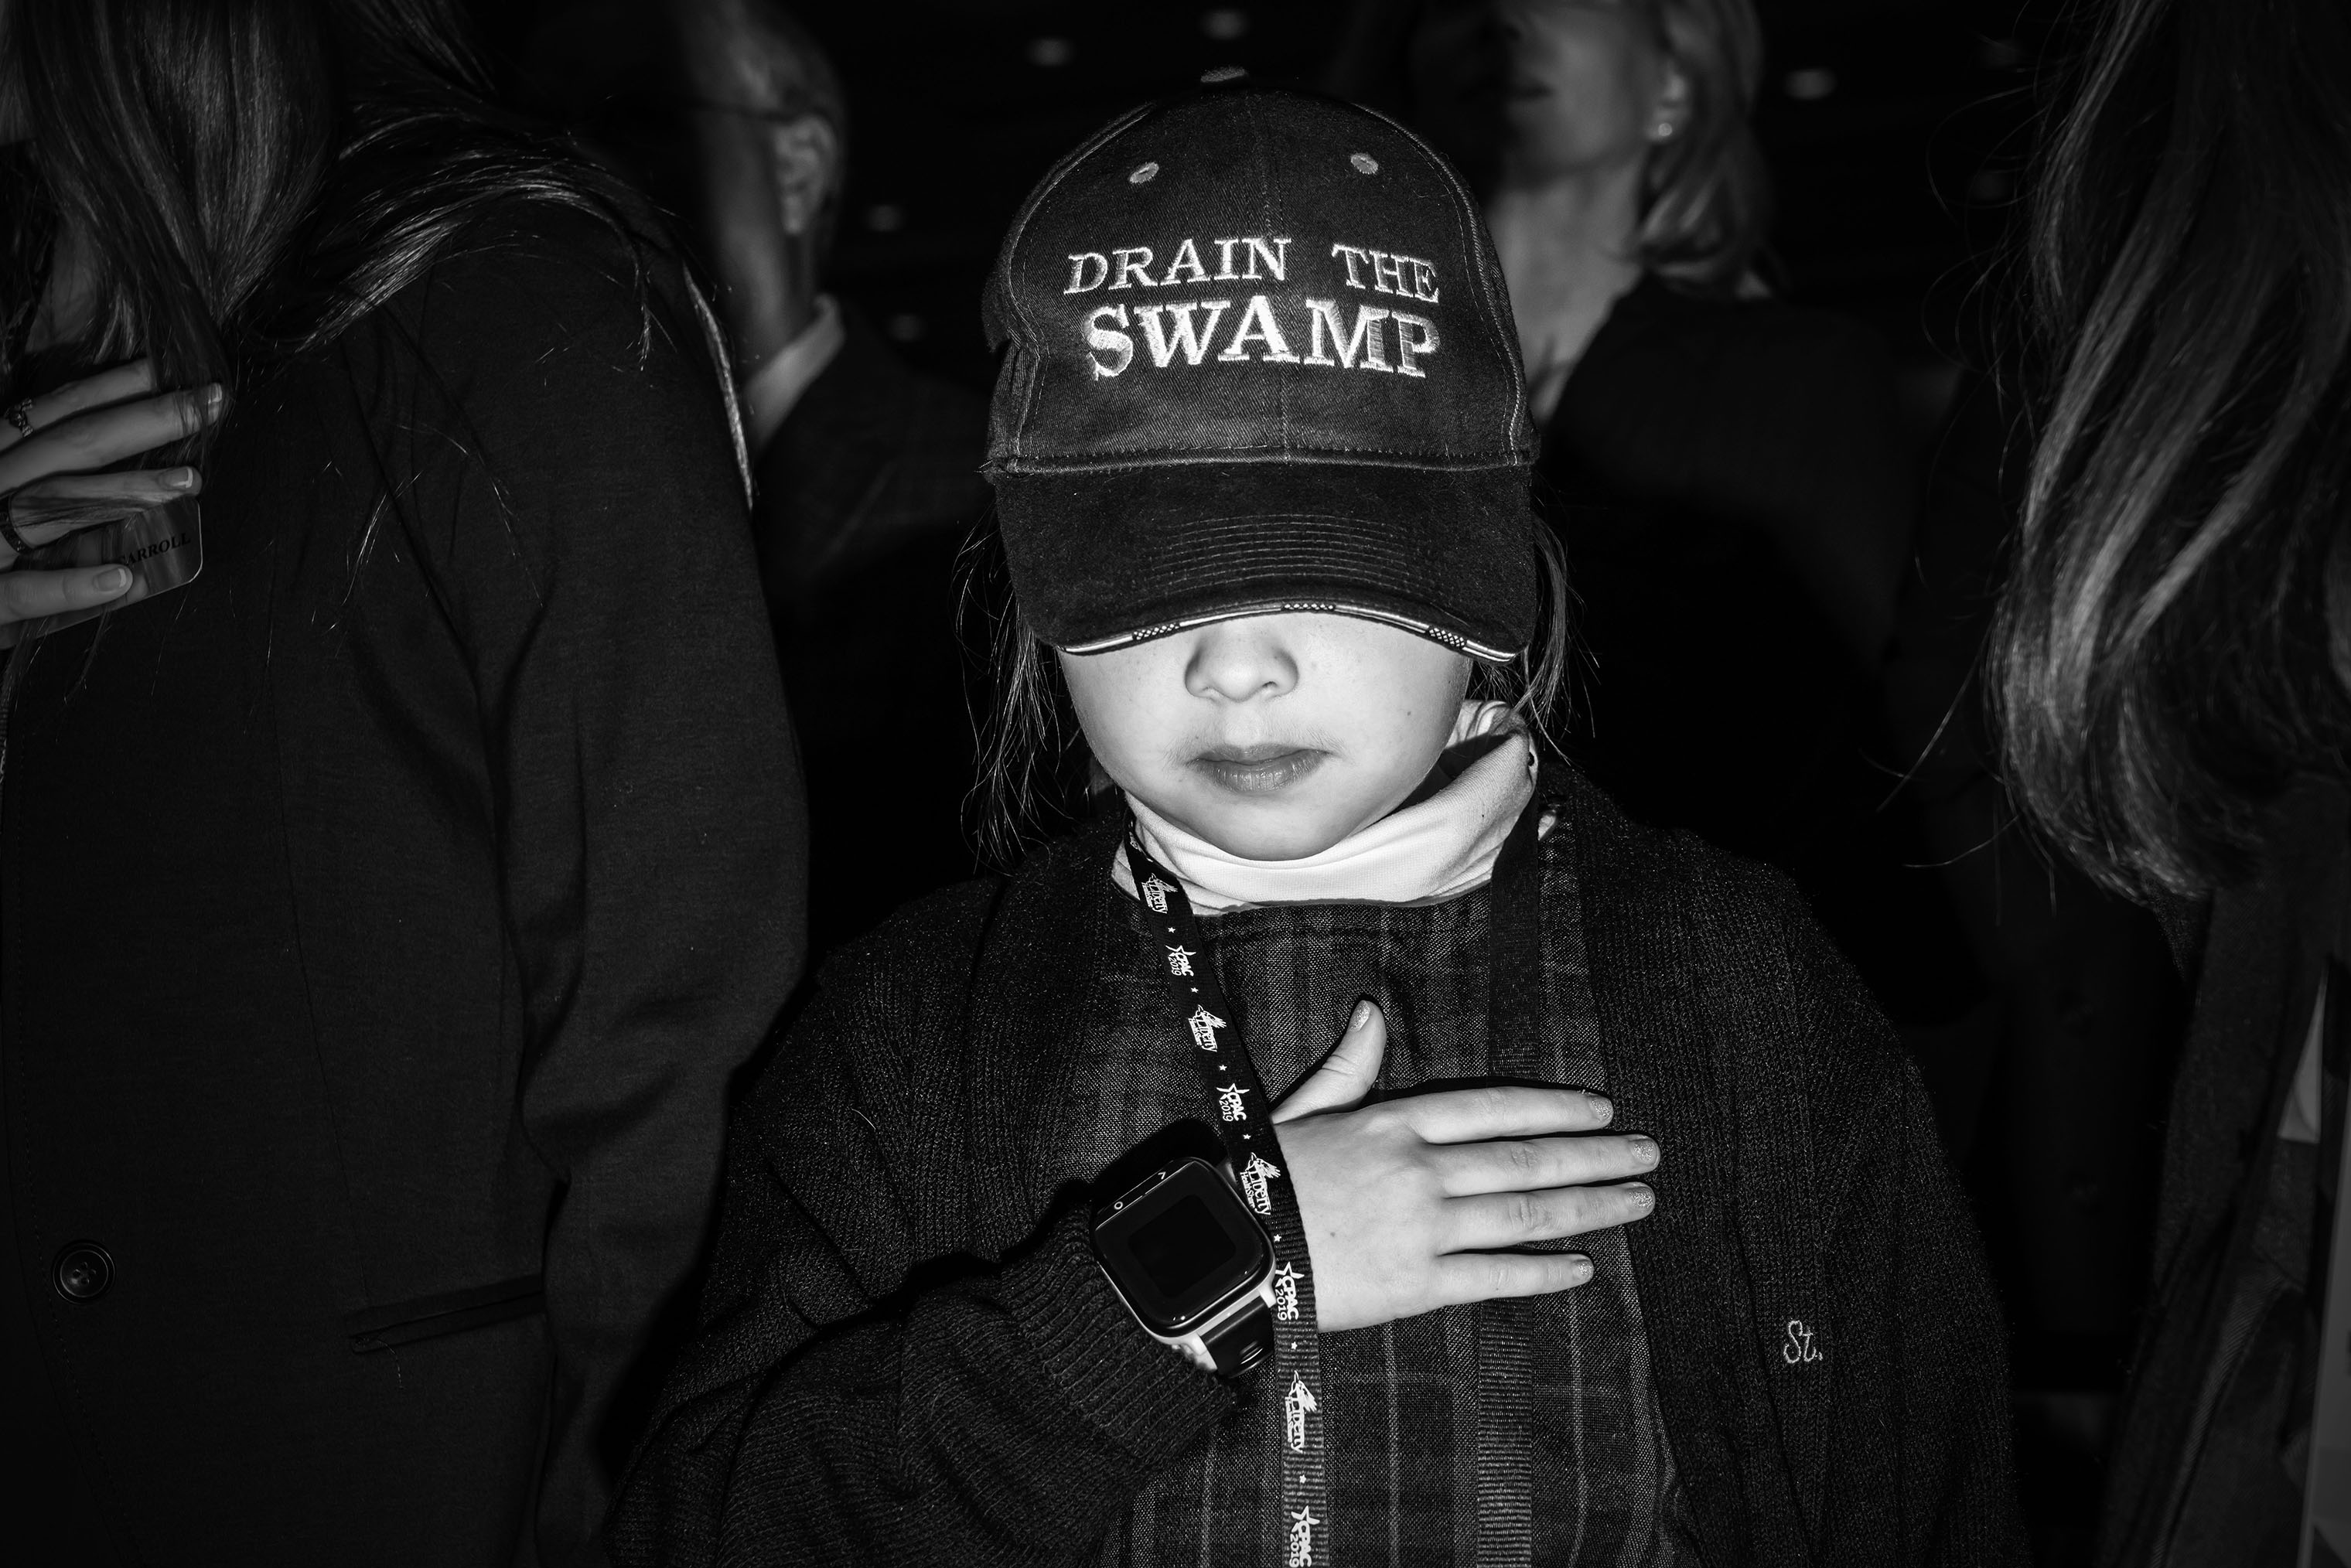 A young attendee shows support for President Donald Trump.